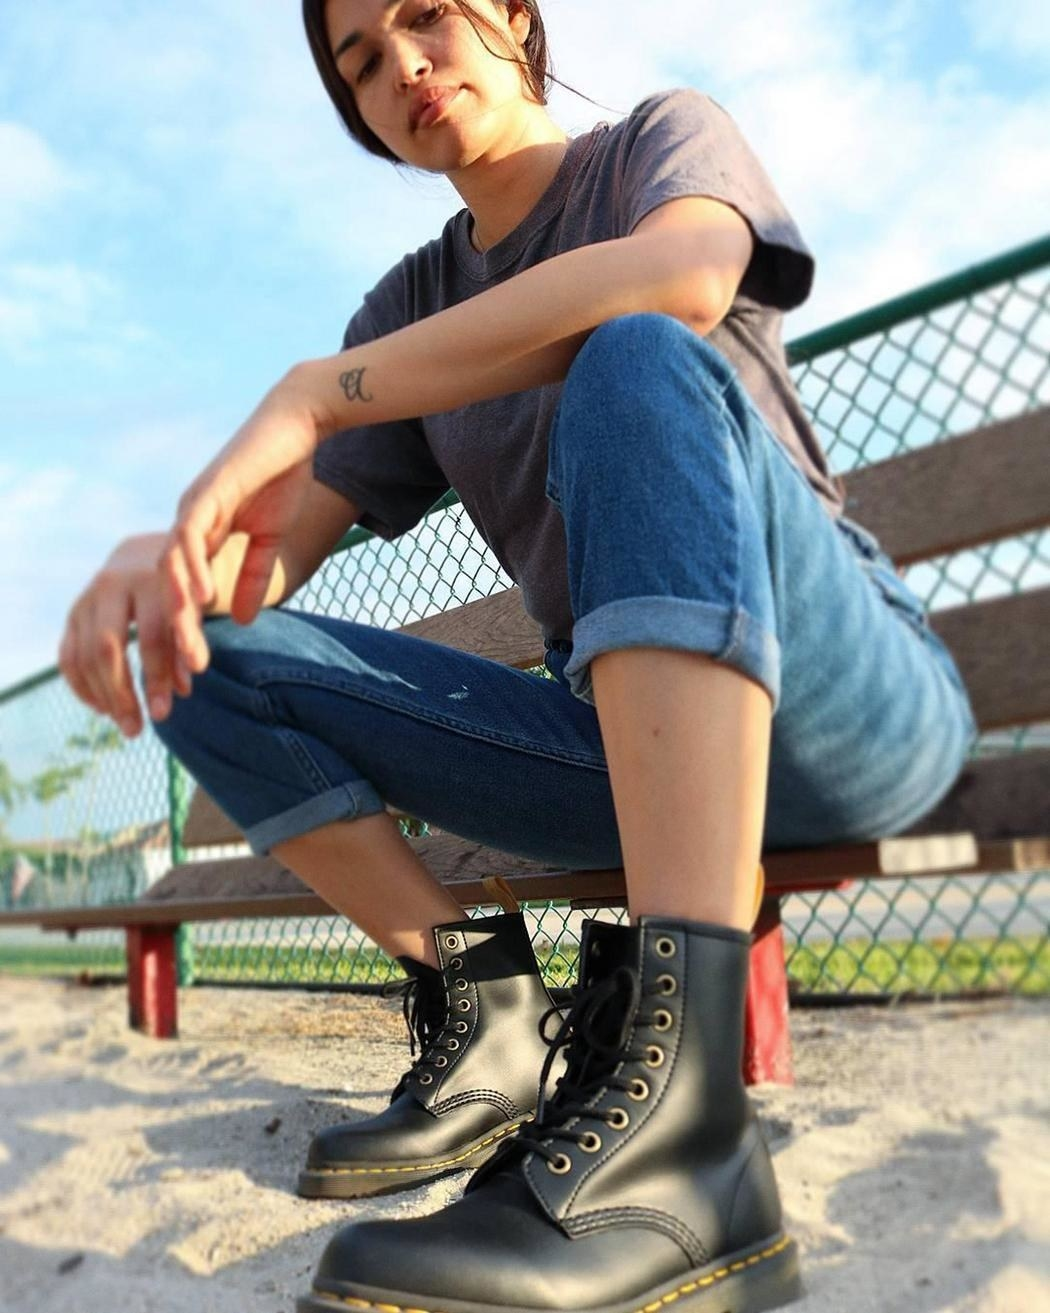 model wearing the thick-soled black combat boots